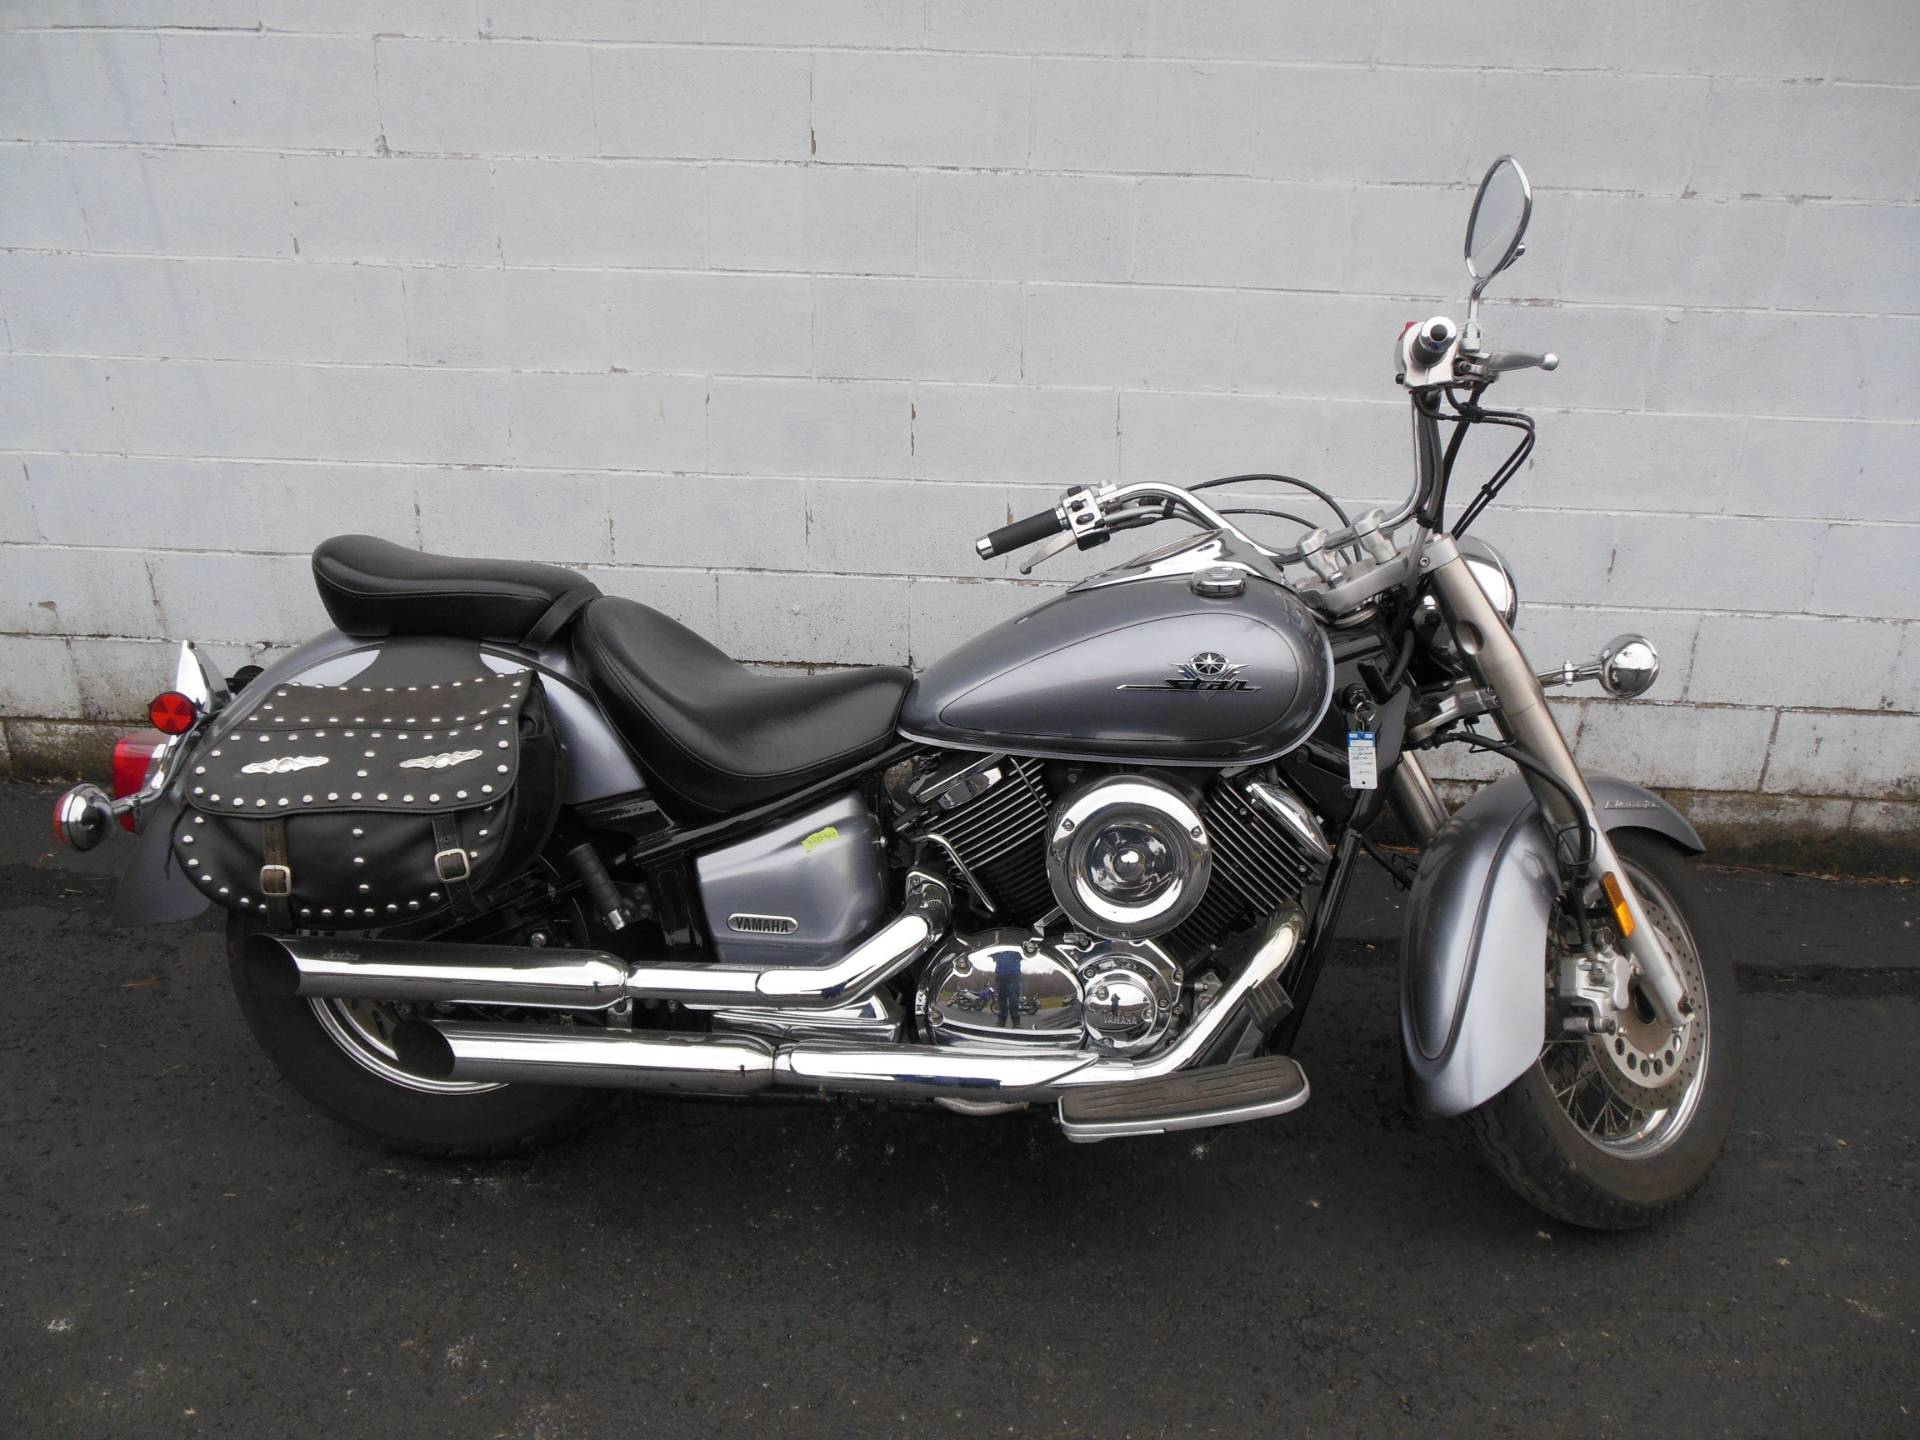 Used 2003 yamaha v star 1100 classic motorcycles in for Yamaha v star classic